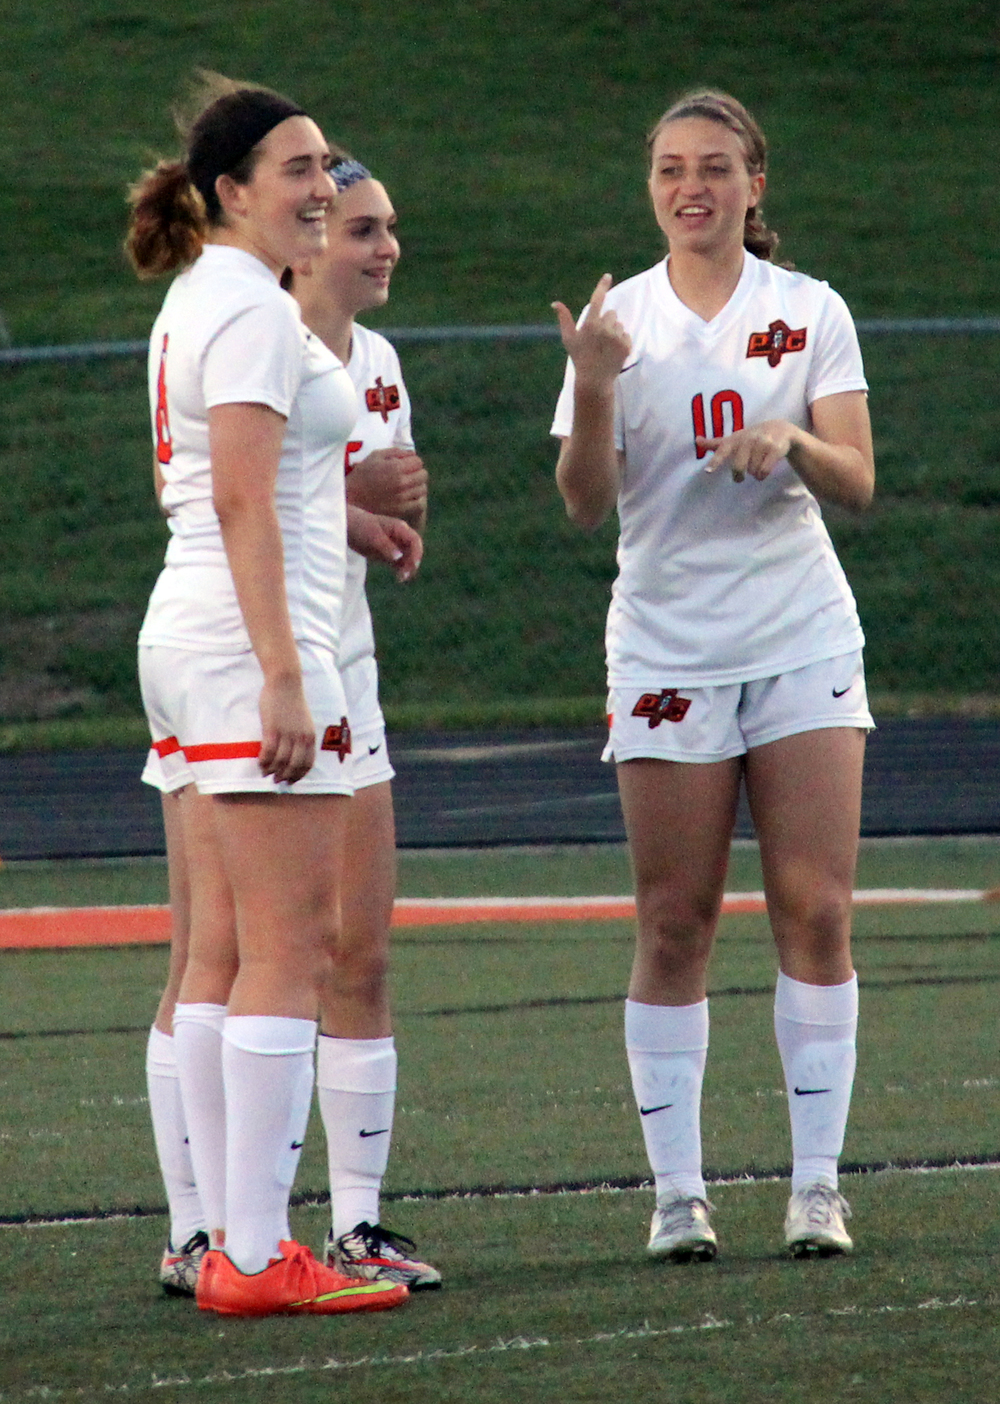 ROSS MARTIN/Citizen photo Platte County senior Haley Valentine, left, freshman Madeline Donnelli, center, and Boe share a laugh prior to the second half kickoff. The three start on the backline for Platte County.